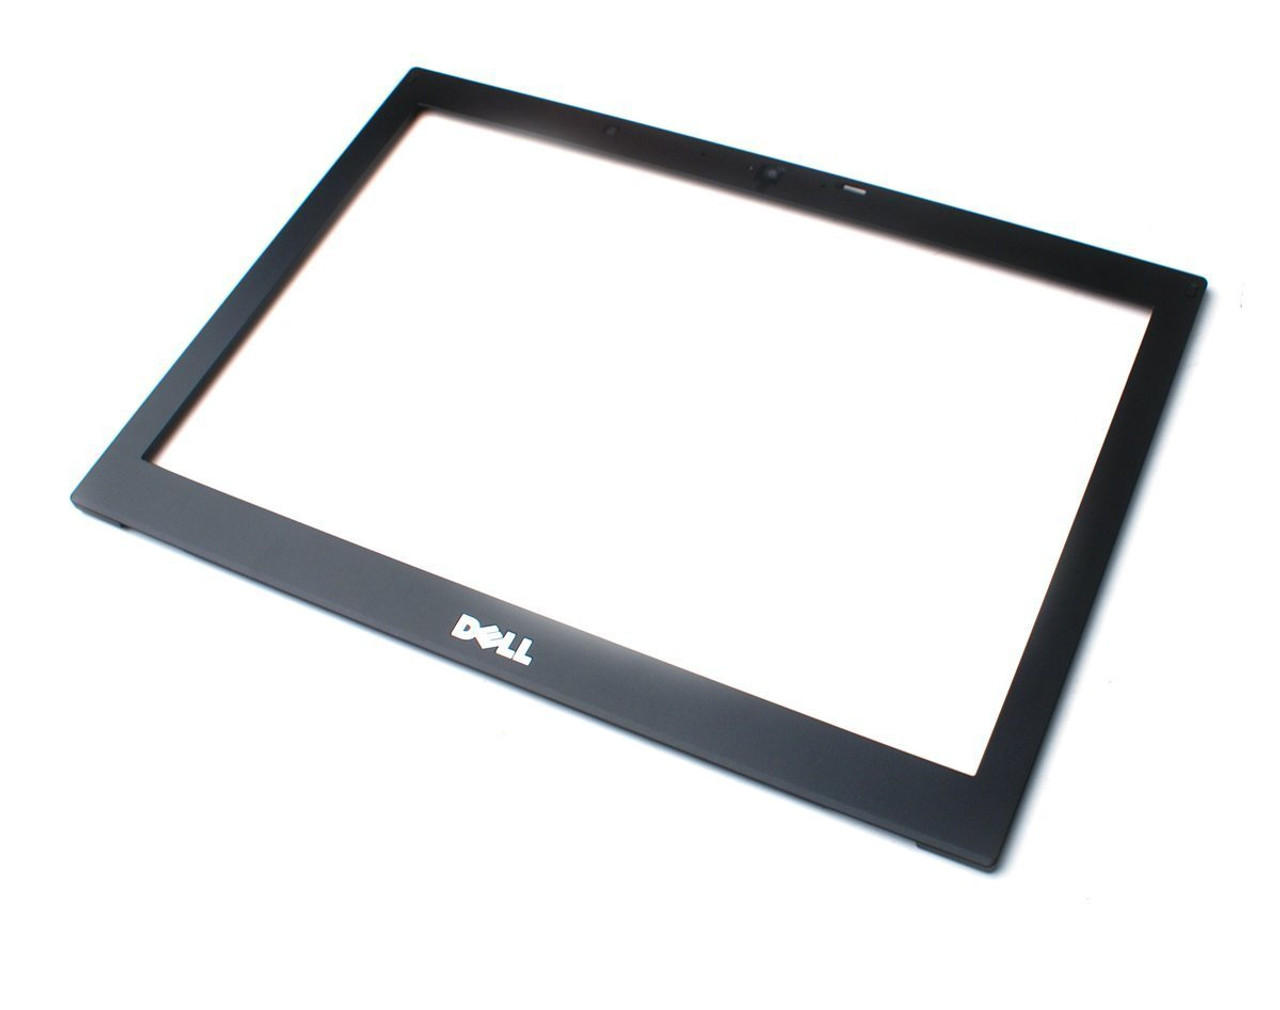 Dell Latitude E6410 LCD Front Trim Bezel with Camera Window - DJWJD